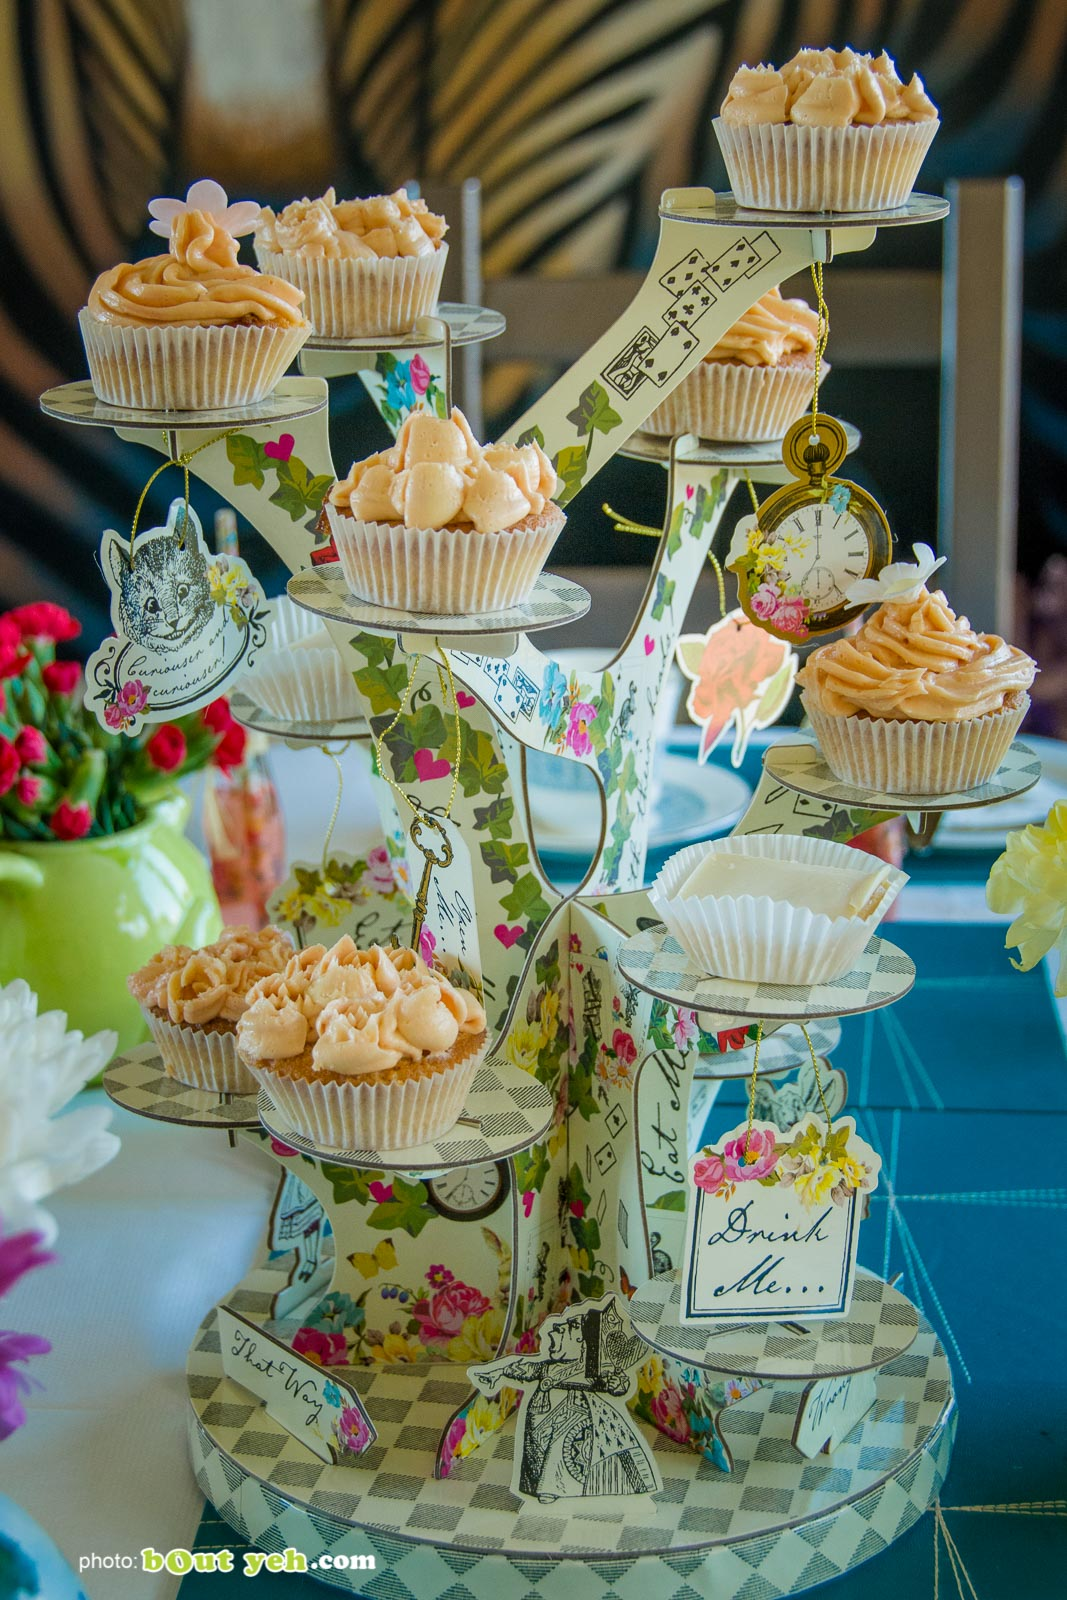 Alice In Wonderland themed cake stand at the Bout Yeh Brexit Mad Hatters Tea Party - photo 9230 by Bout Yeh photographers Belfast